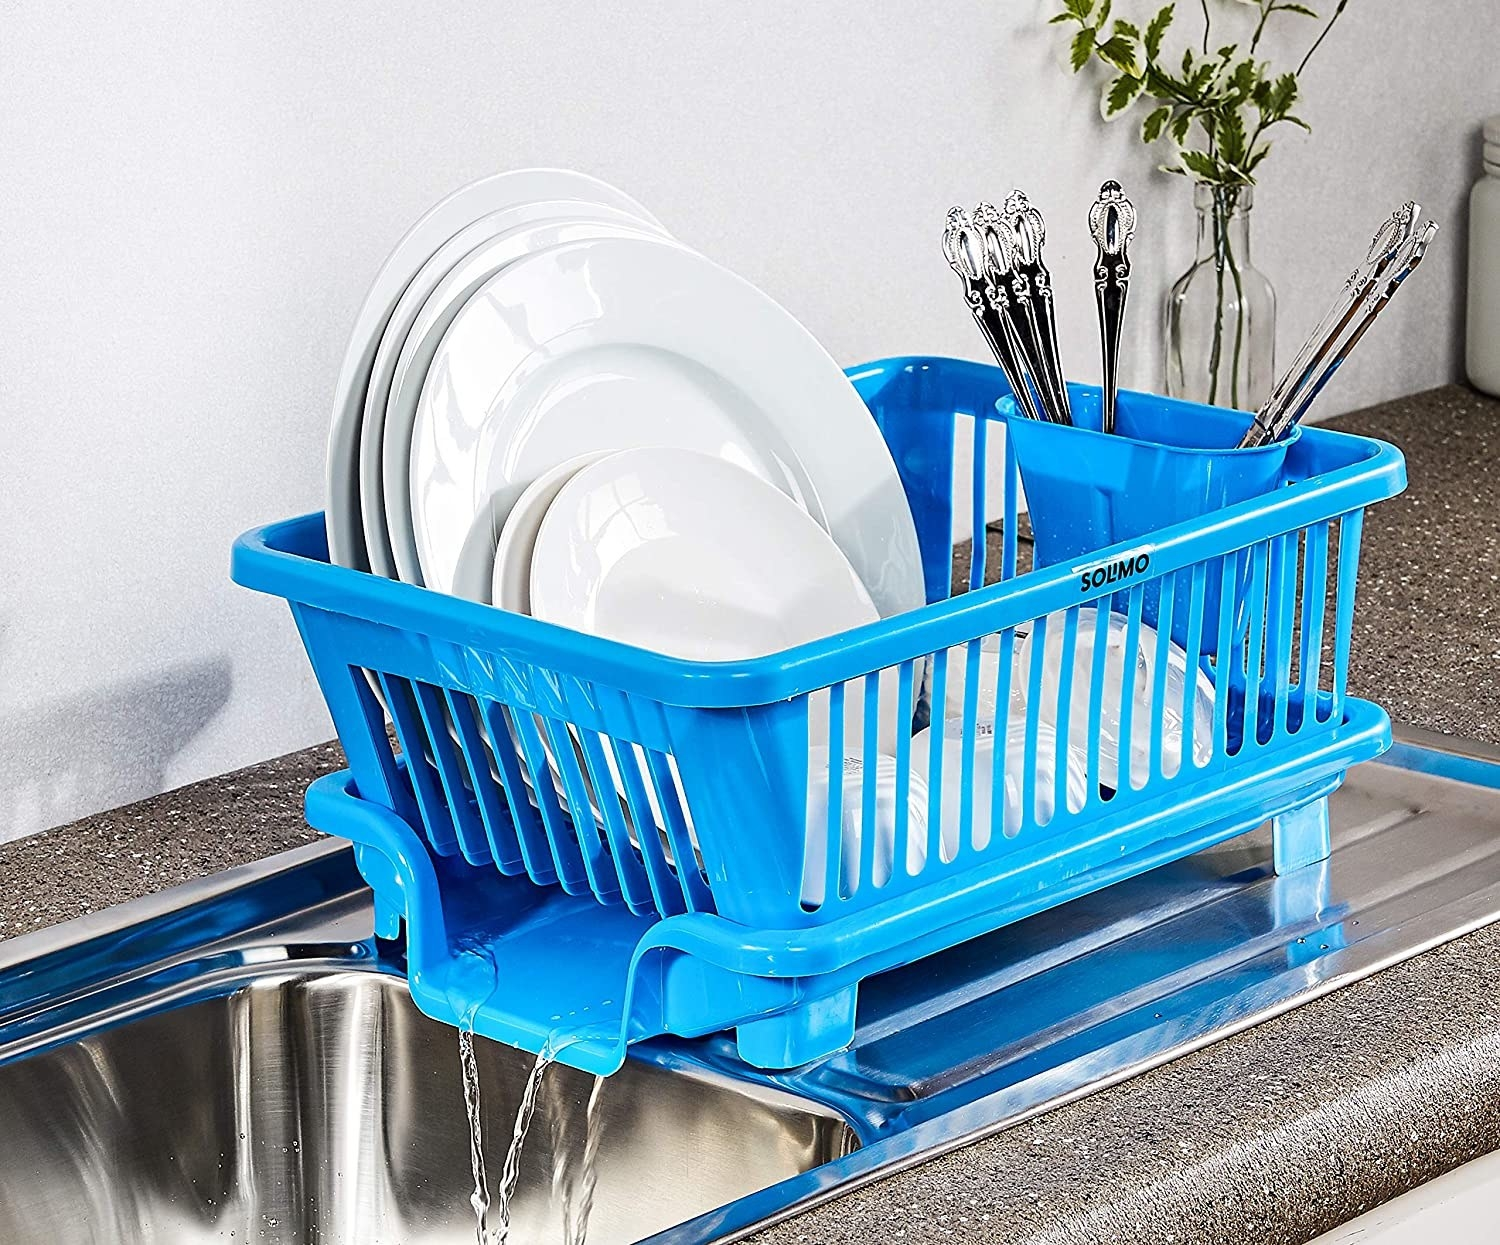 A blue dish drying rack with water running off from the side of it.